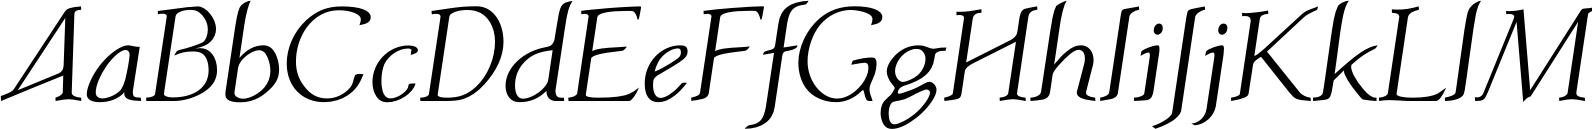 Atlantic Serif Regular Italic Font